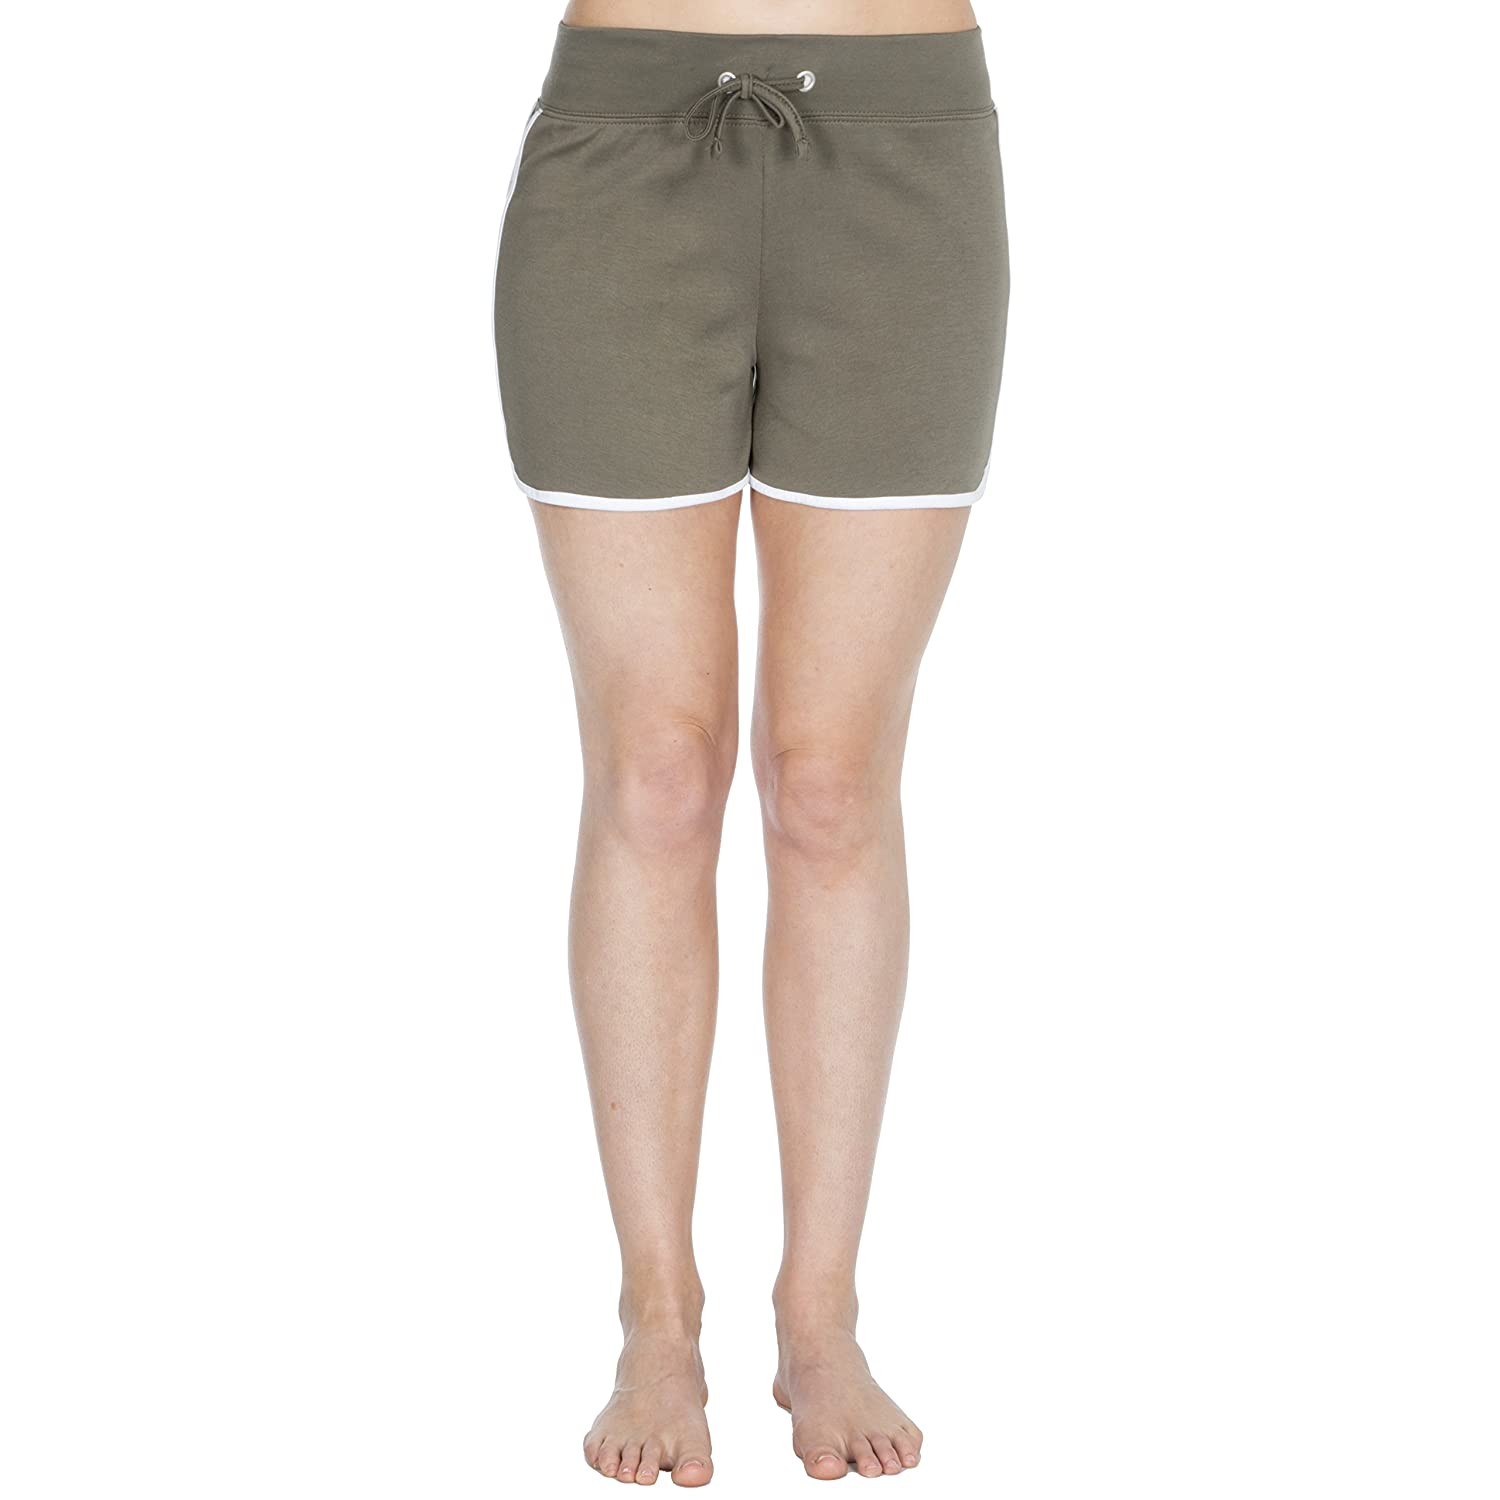 COTTONIQUE Ladies Cotton Jersey Shorts with White Trim